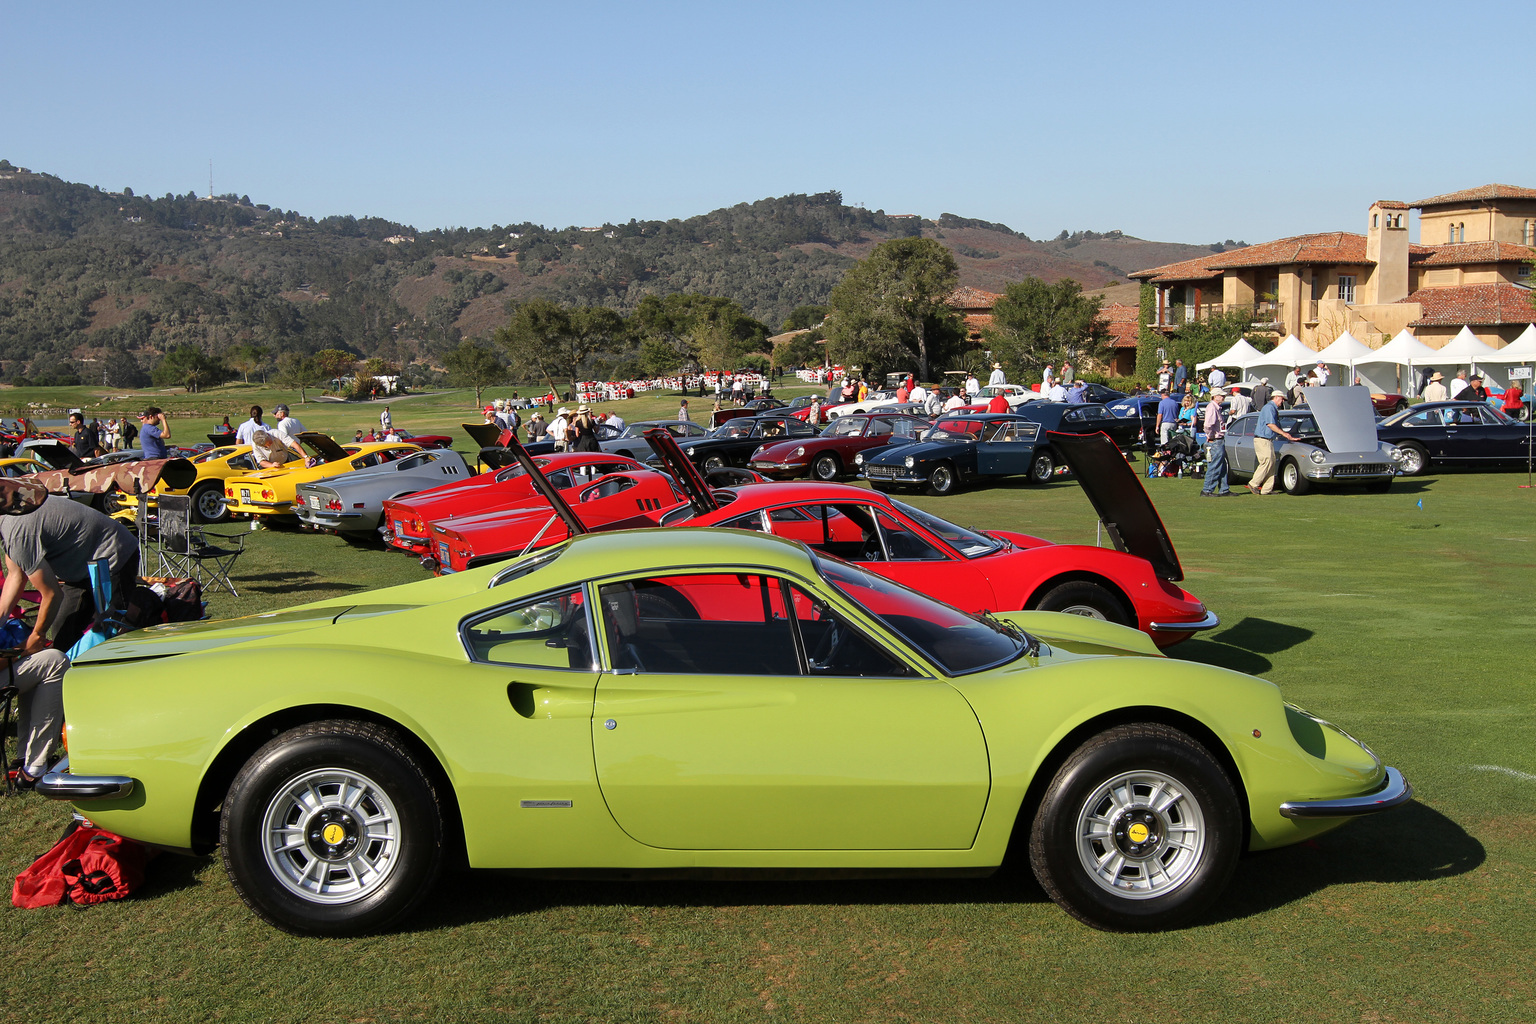 52nd annual 2015 ferrari club of america international meet 1. Cars Review. Best American Auto & Cars Review